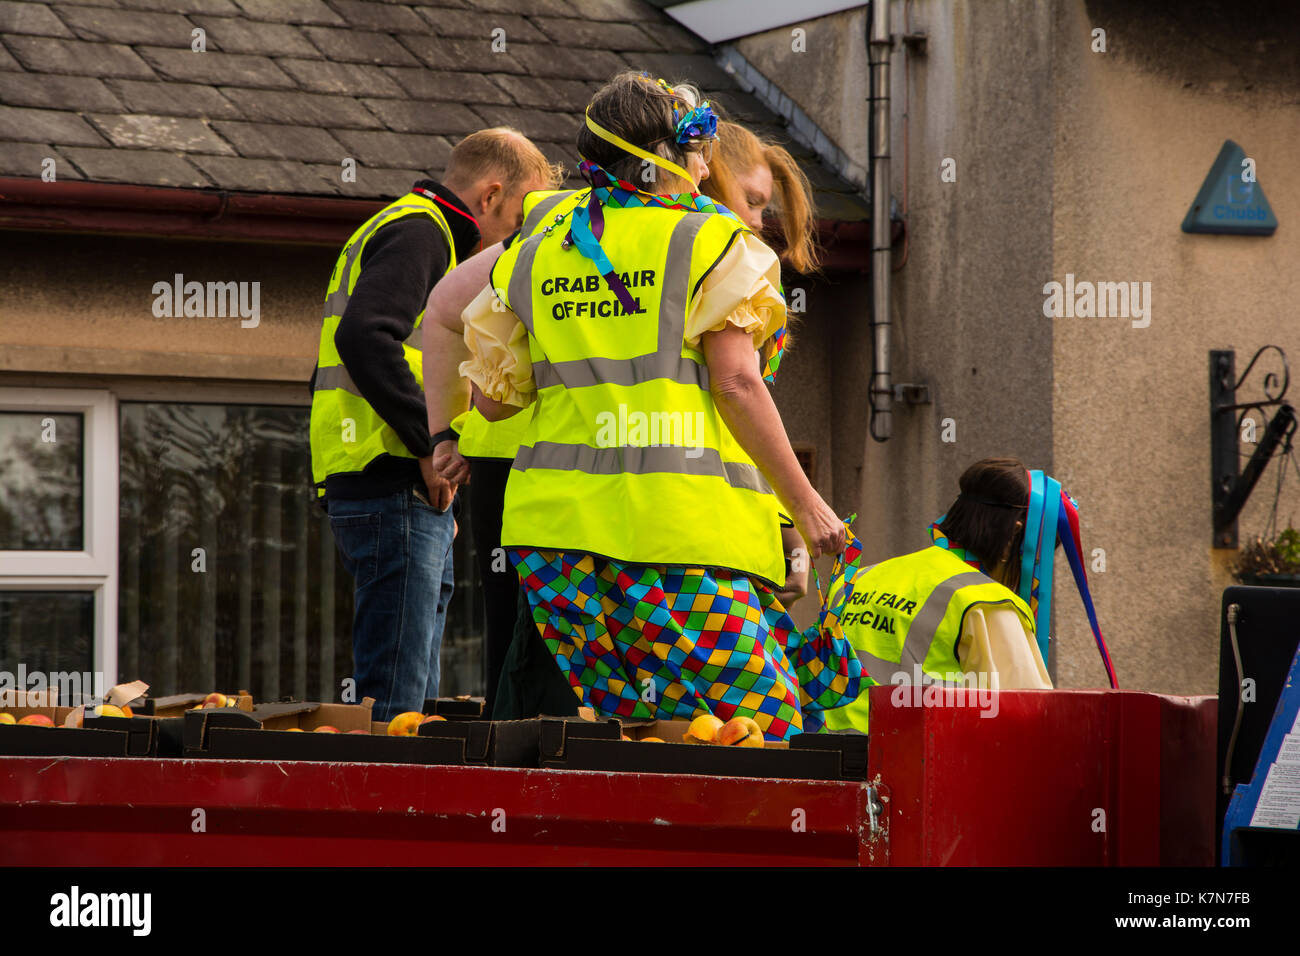 crab fair officials getting ready to throw the apples at the 750th crab fair in egremont west cumbria - Stock Image